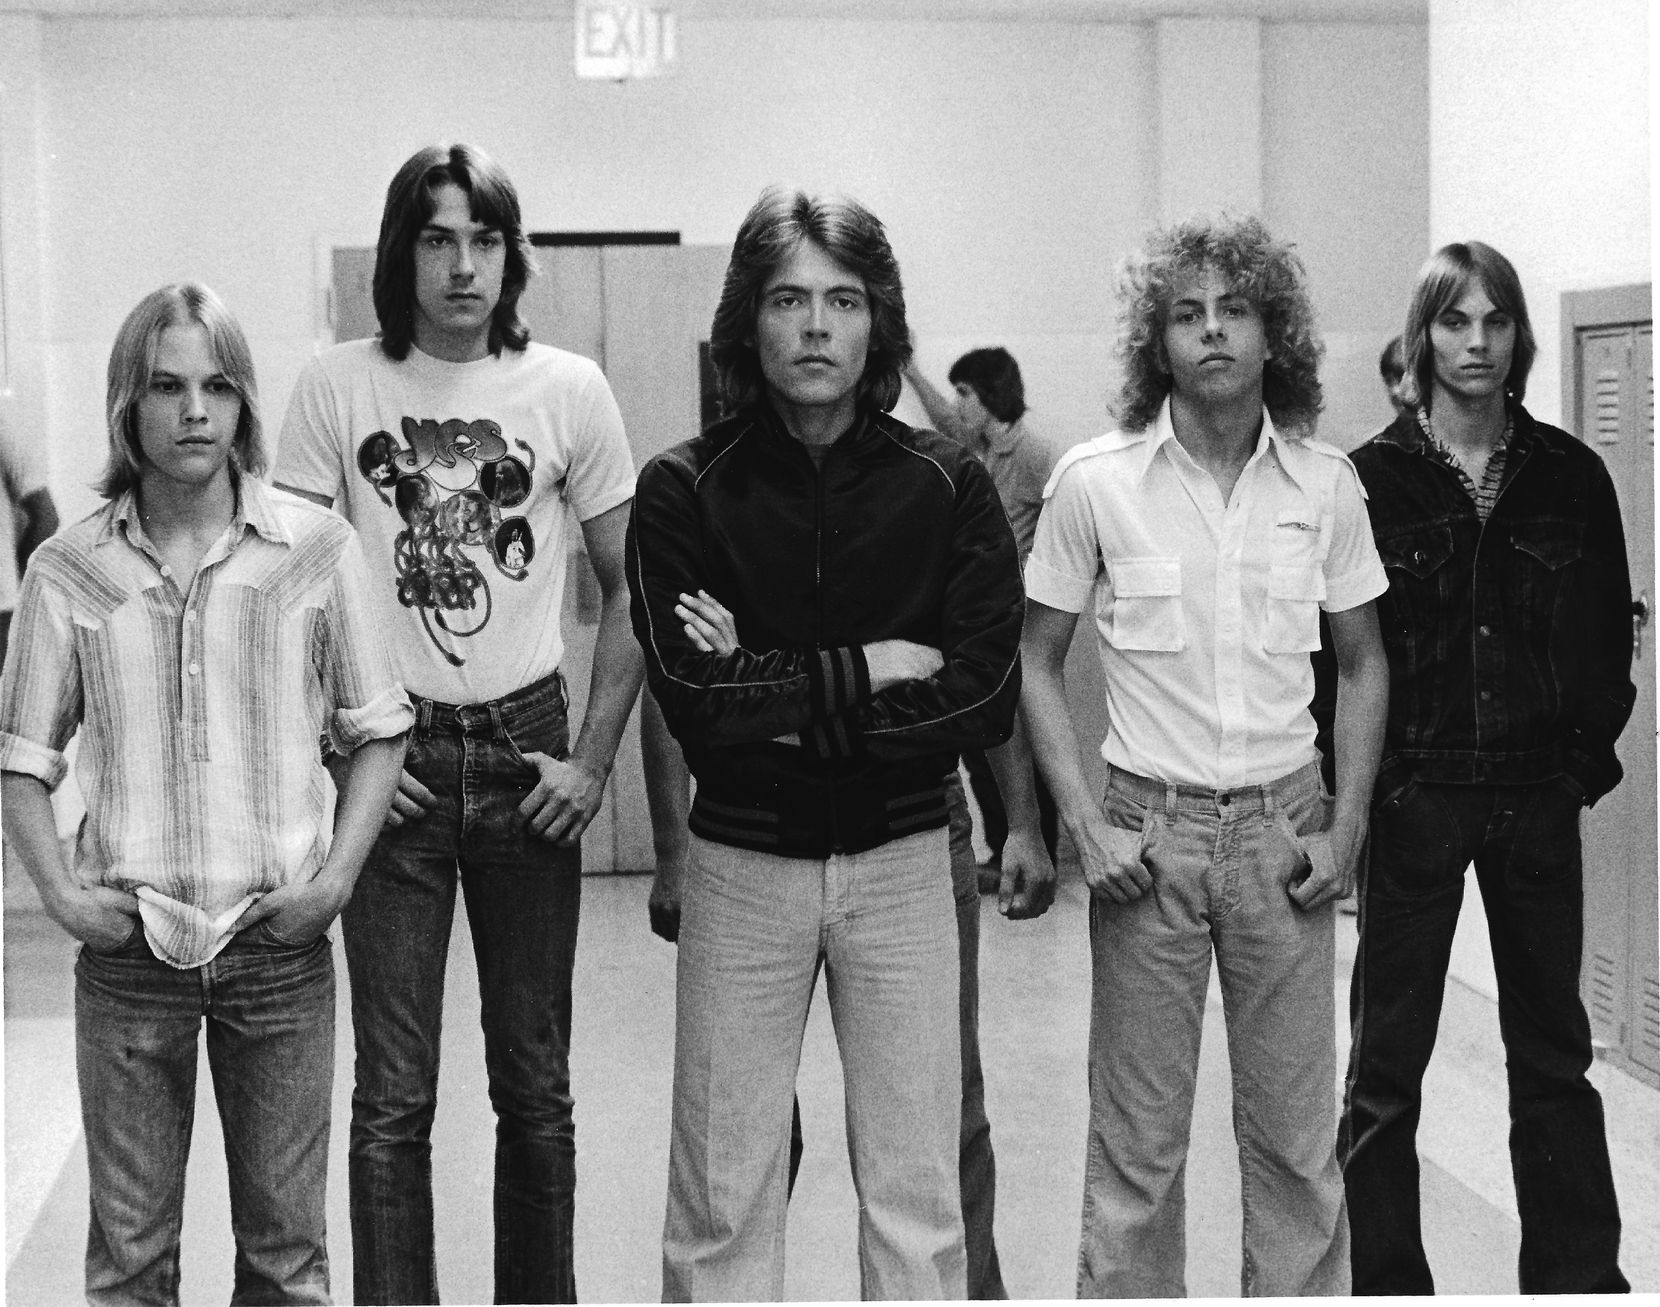 Mark Ridlen, second from right, was a member of the fictional band Rapid Fire, as well as real-life local bands Quad Pi and Lithium X-Mas